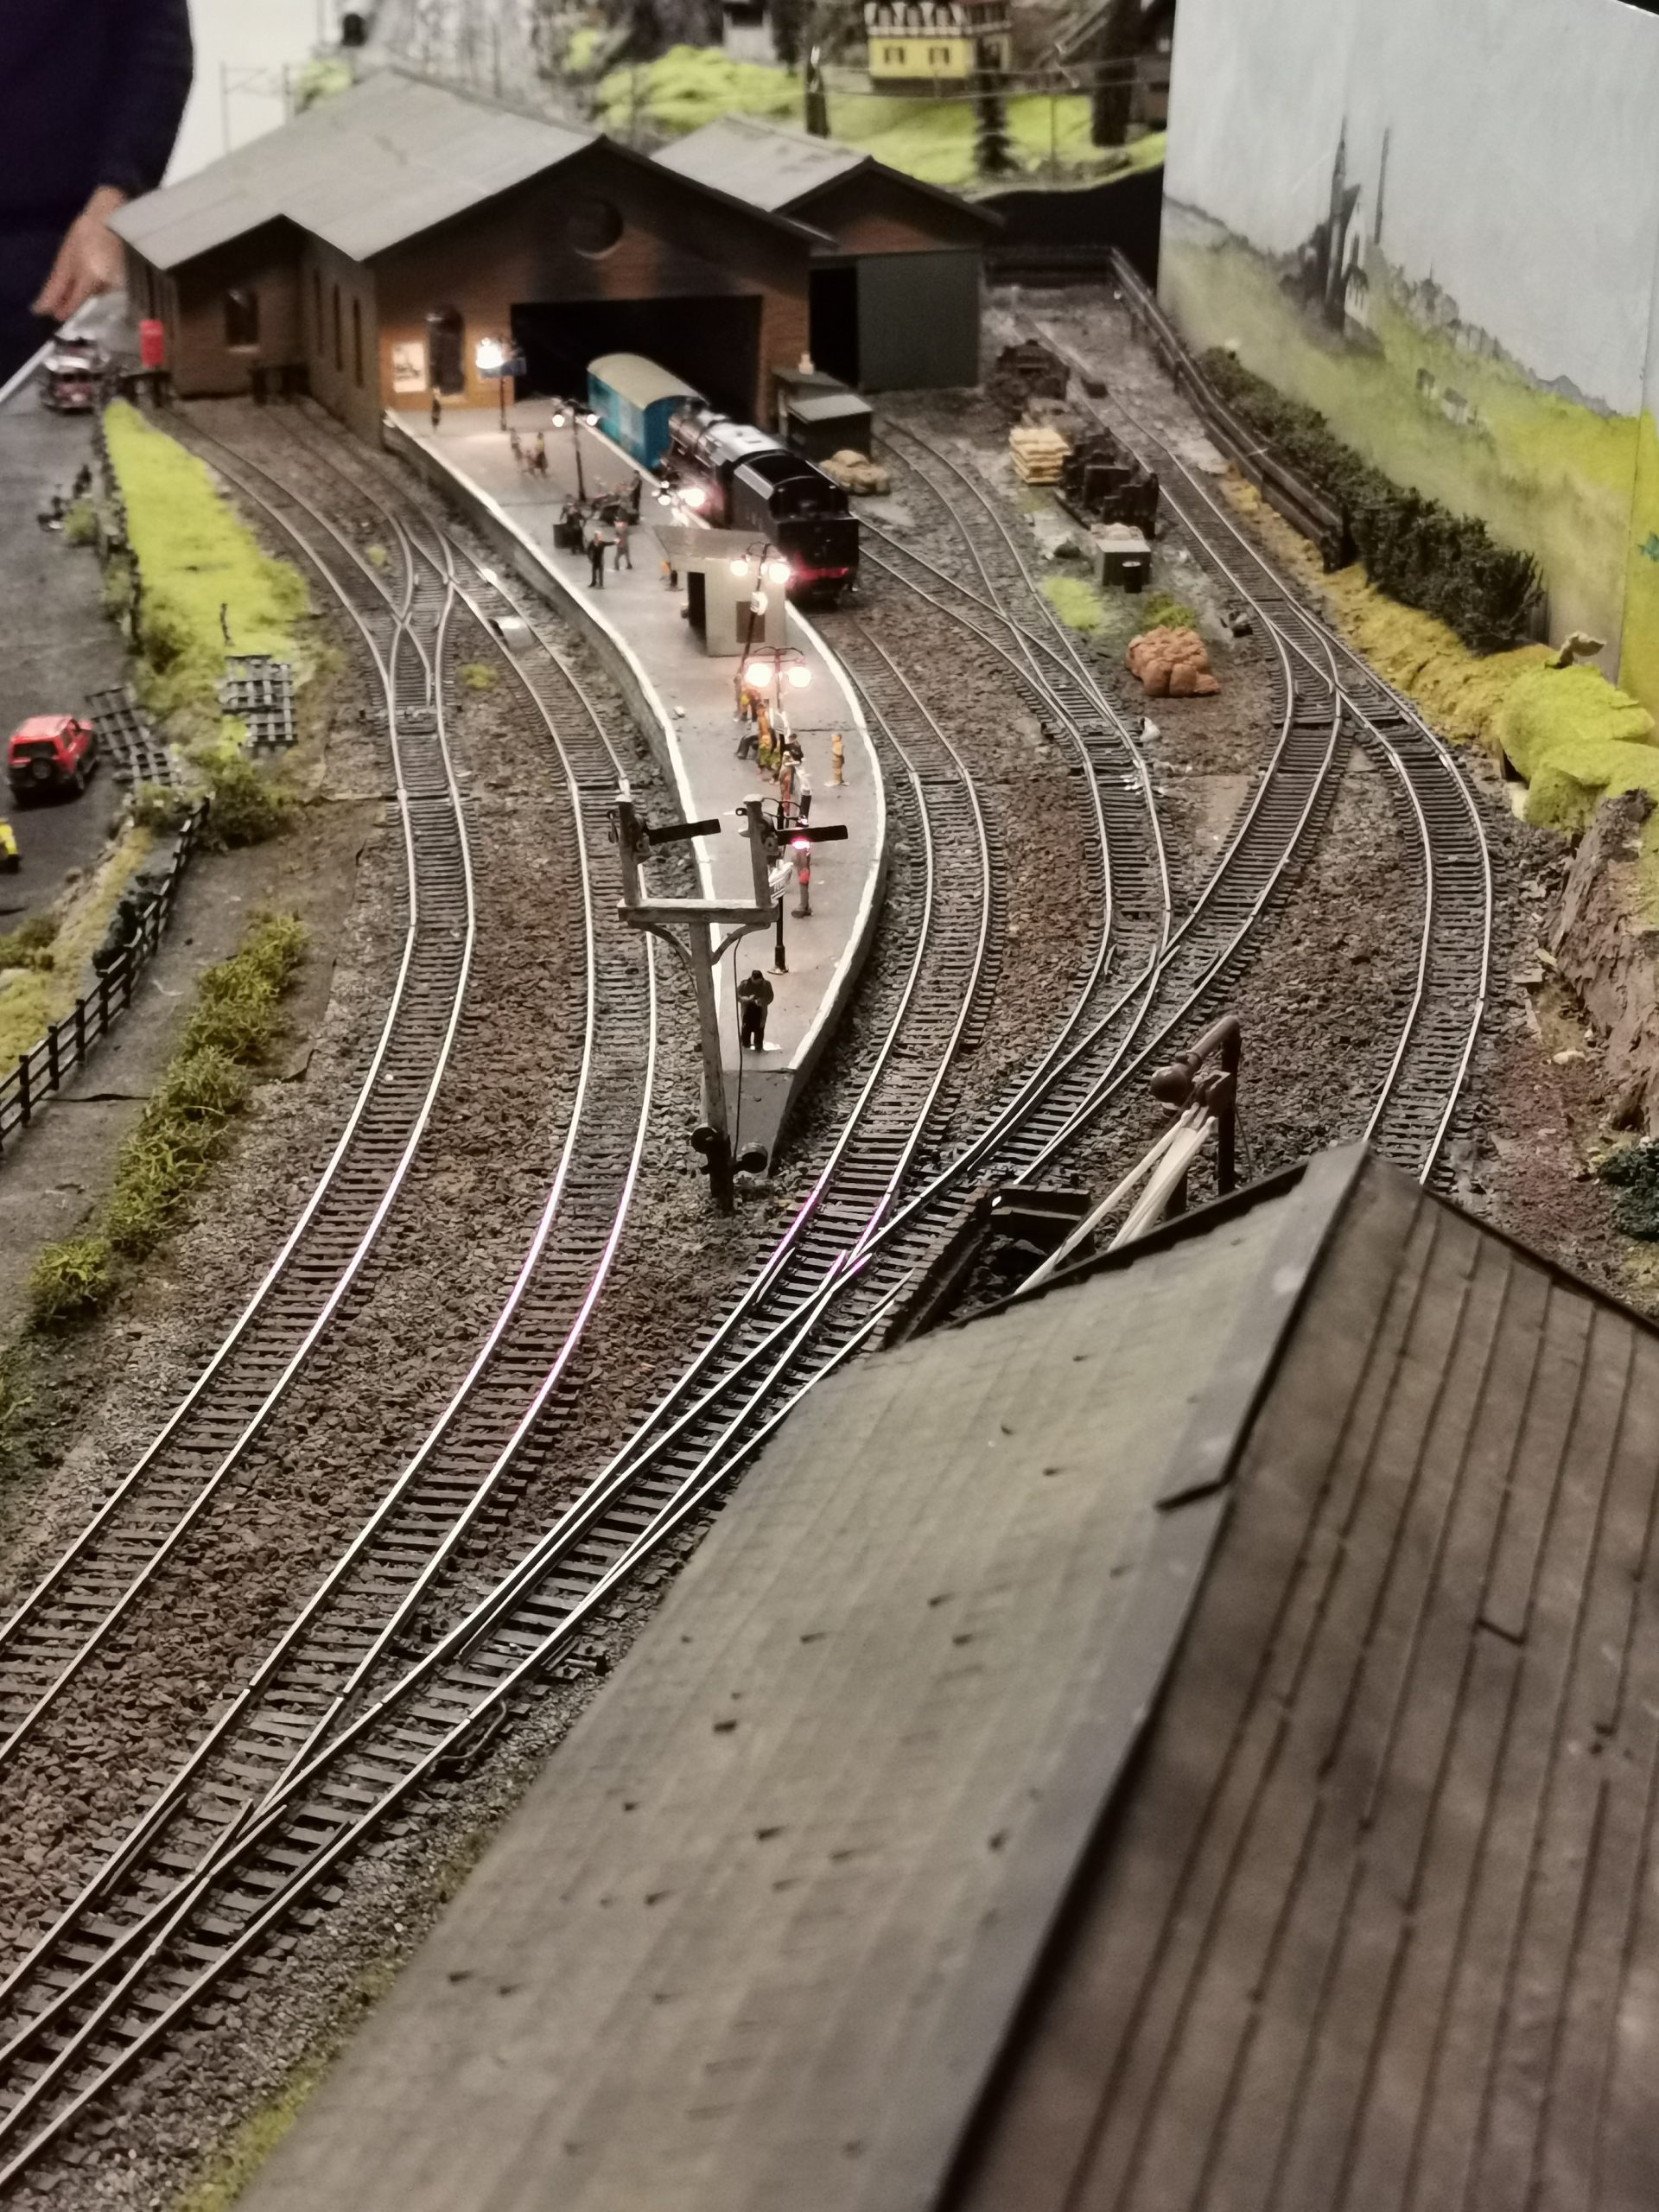 Historic station model replica at Clydeside Model Railway Club